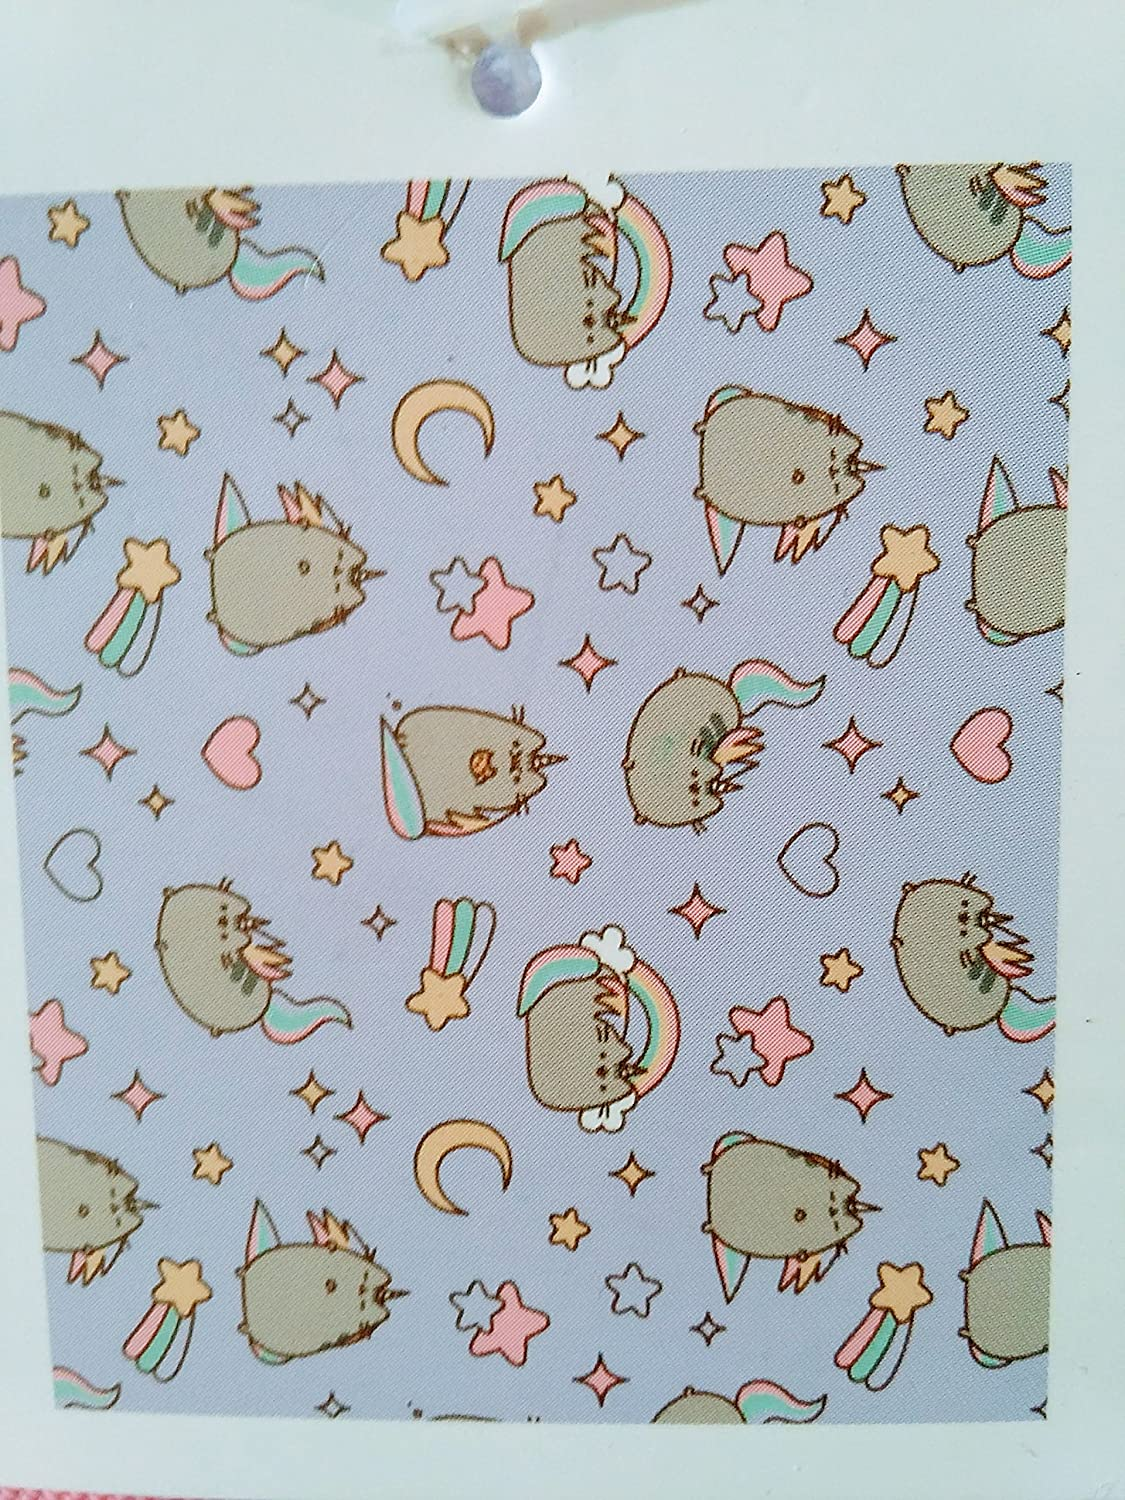 Pusheen Mermaid Throw Pusheen The Cat Blanket Supersoft 125cm x 150cm Sold by Bend The Trend2: Amazon.es: Hogar